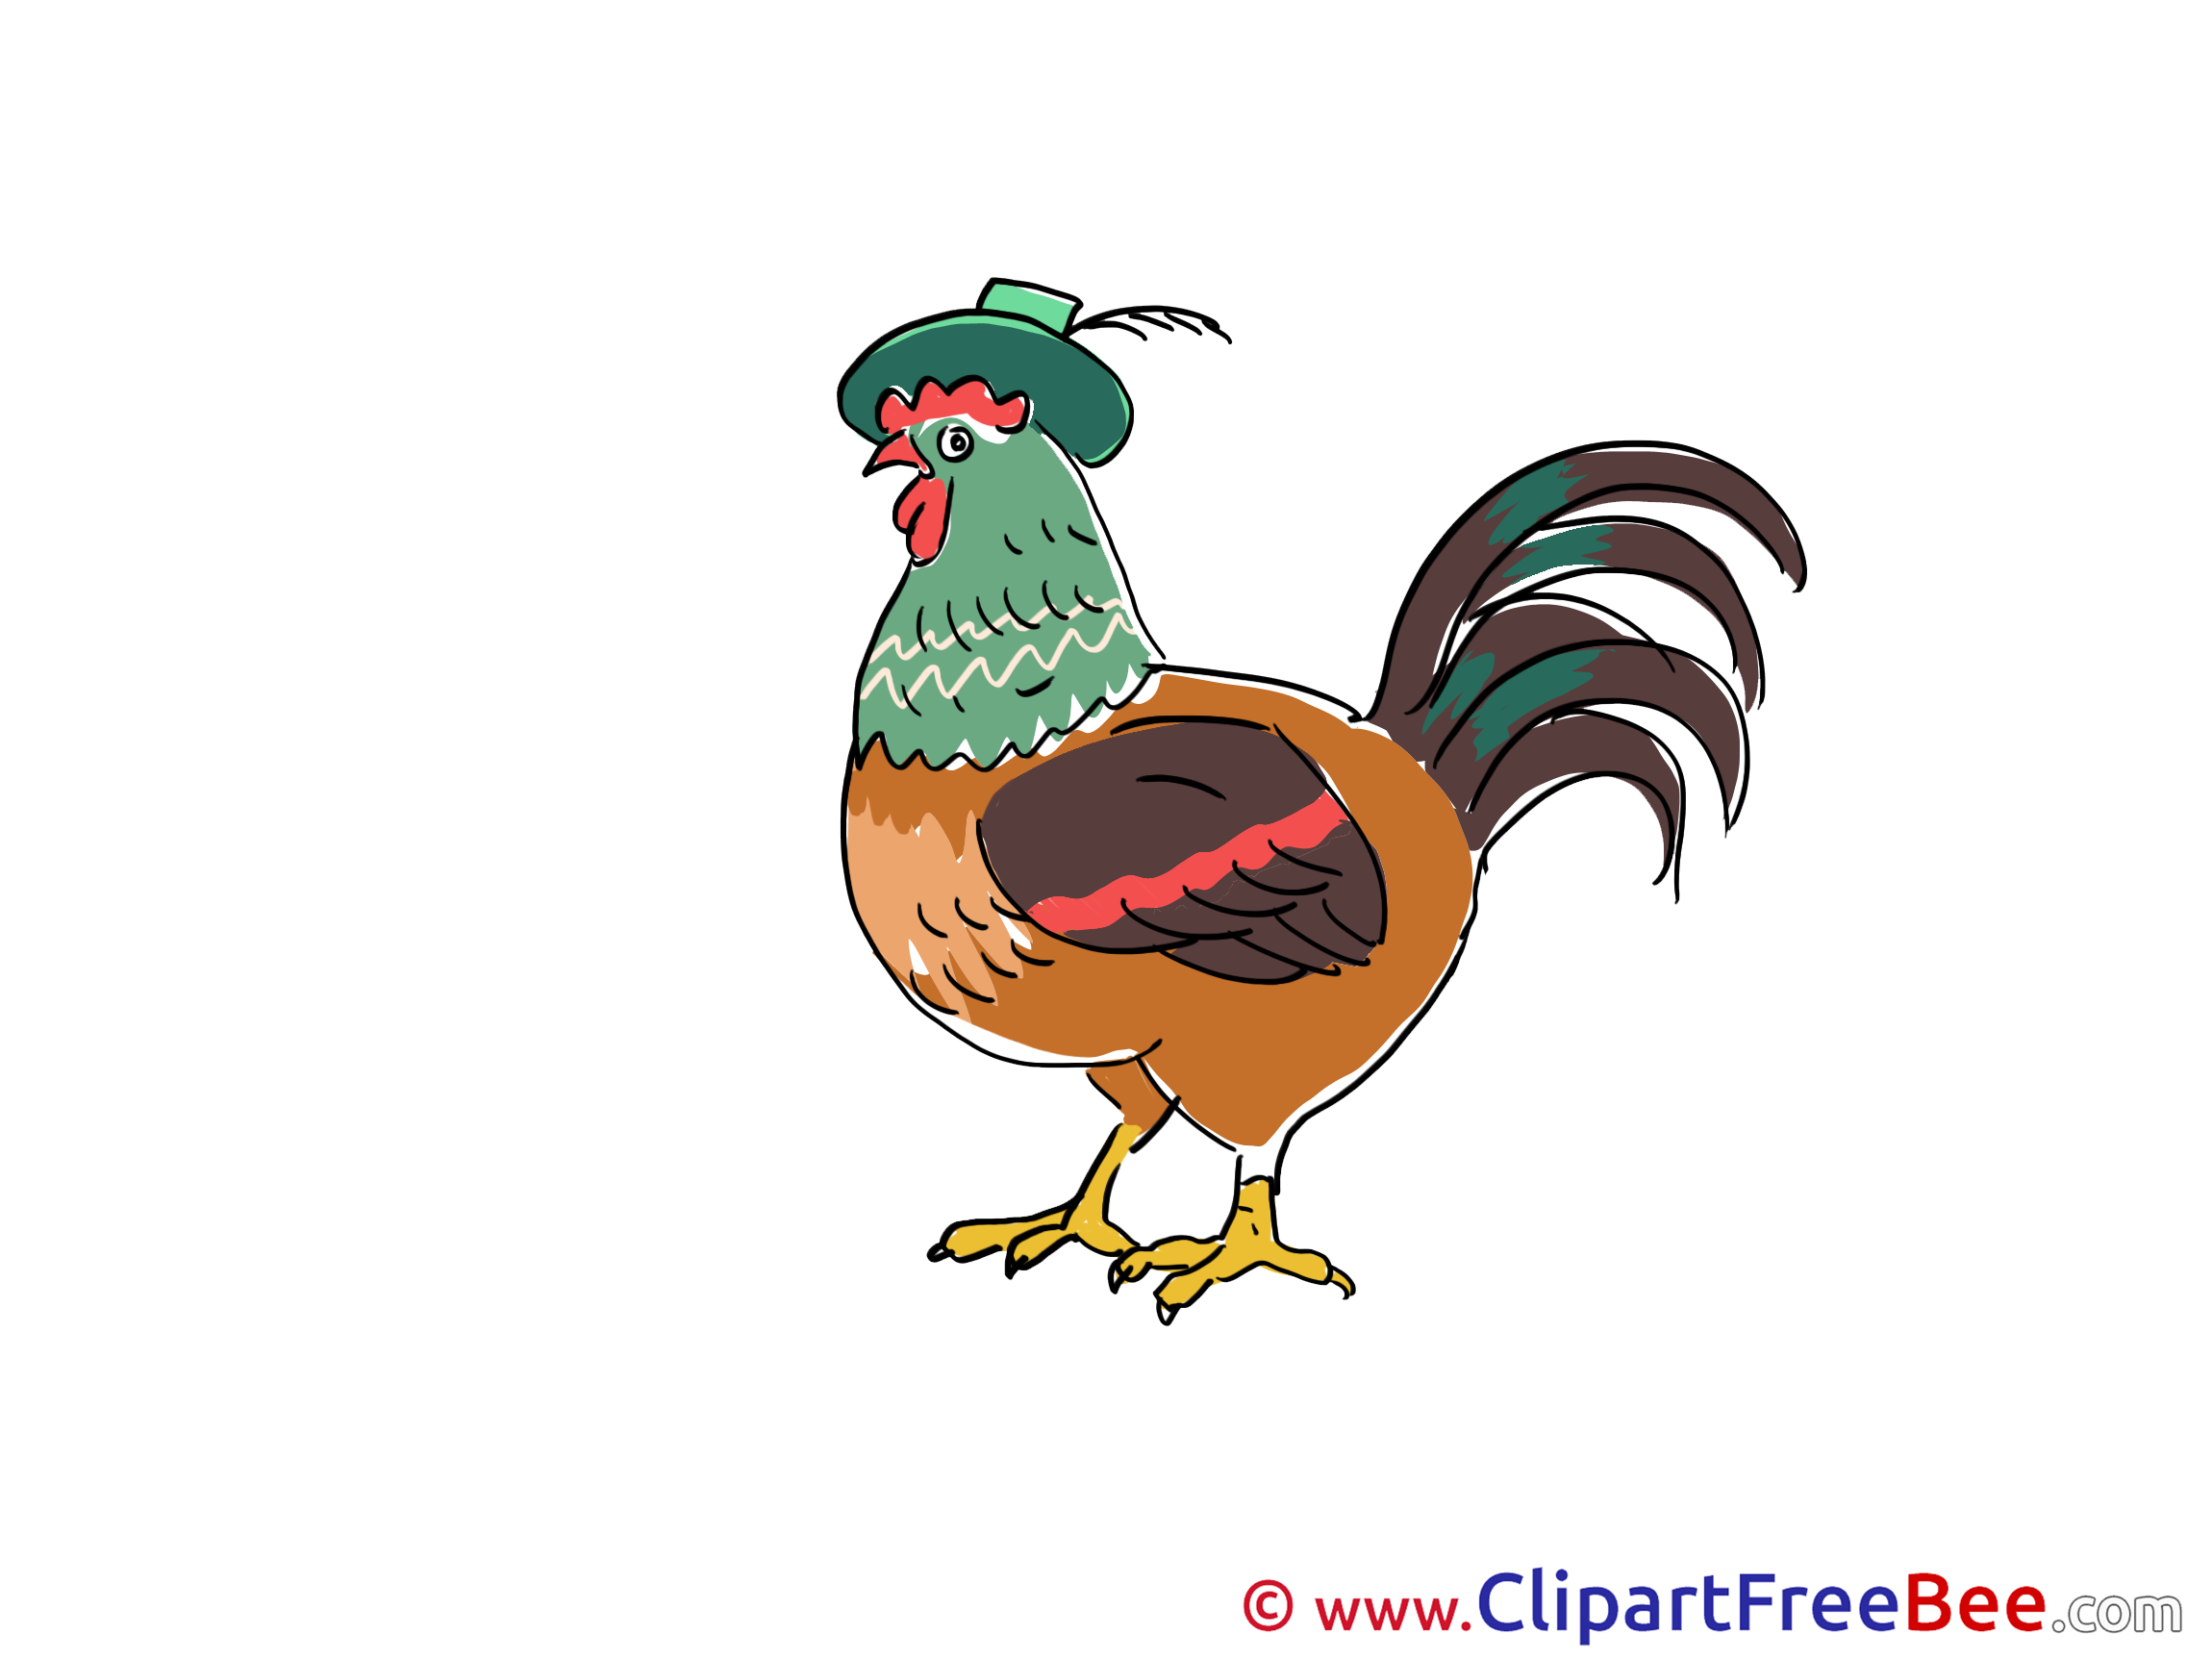 Cock printable Images for download